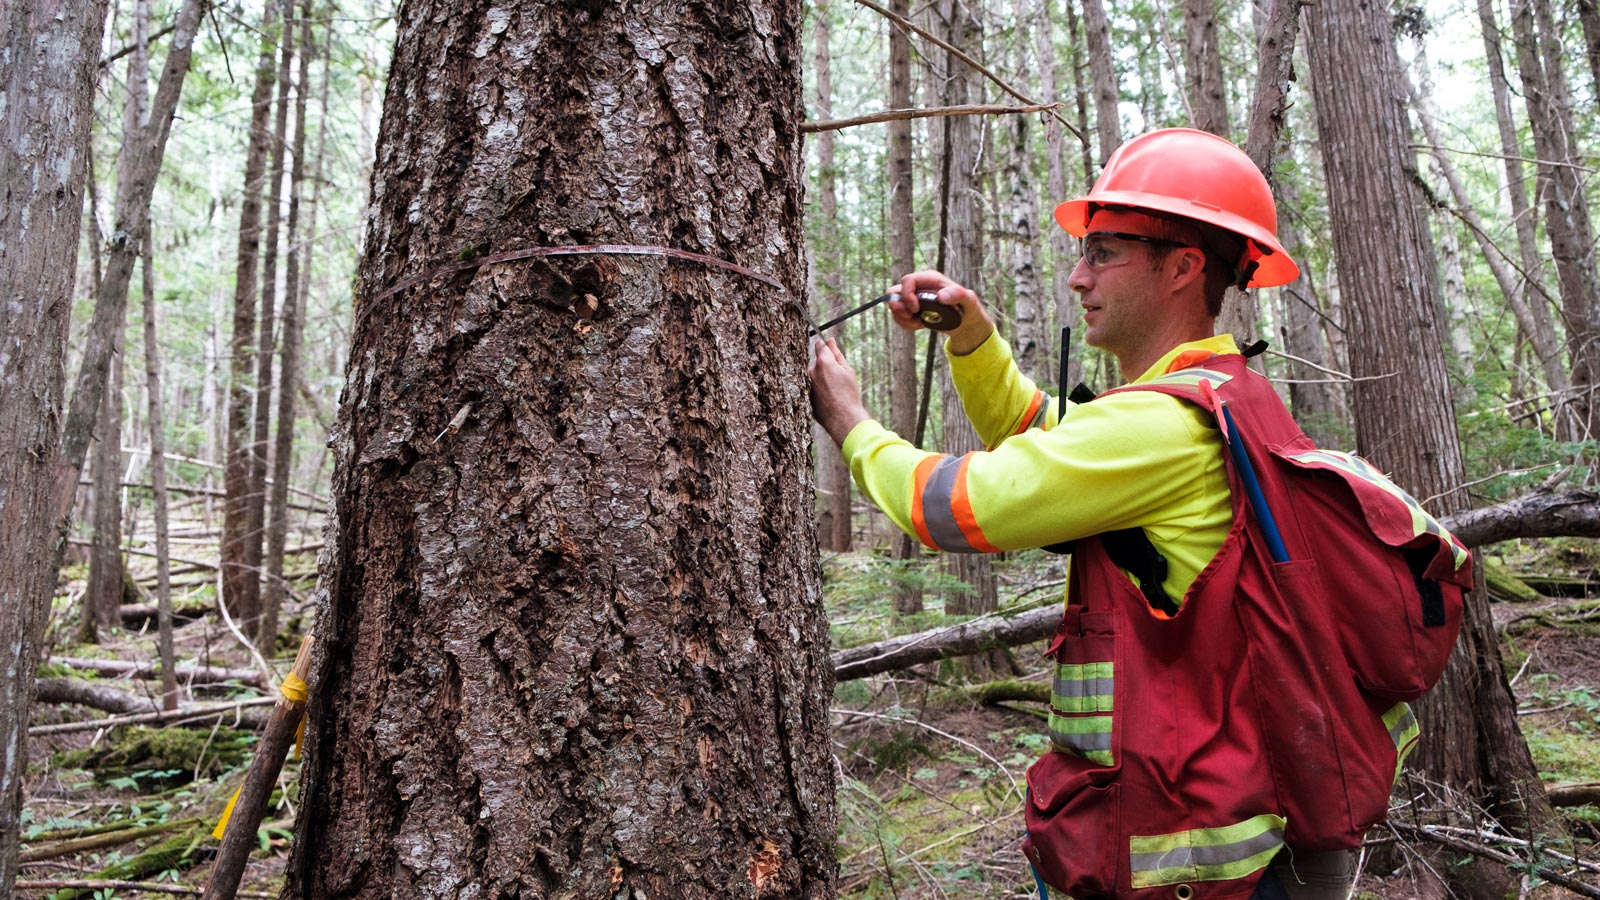 Worker measuring tree circumference